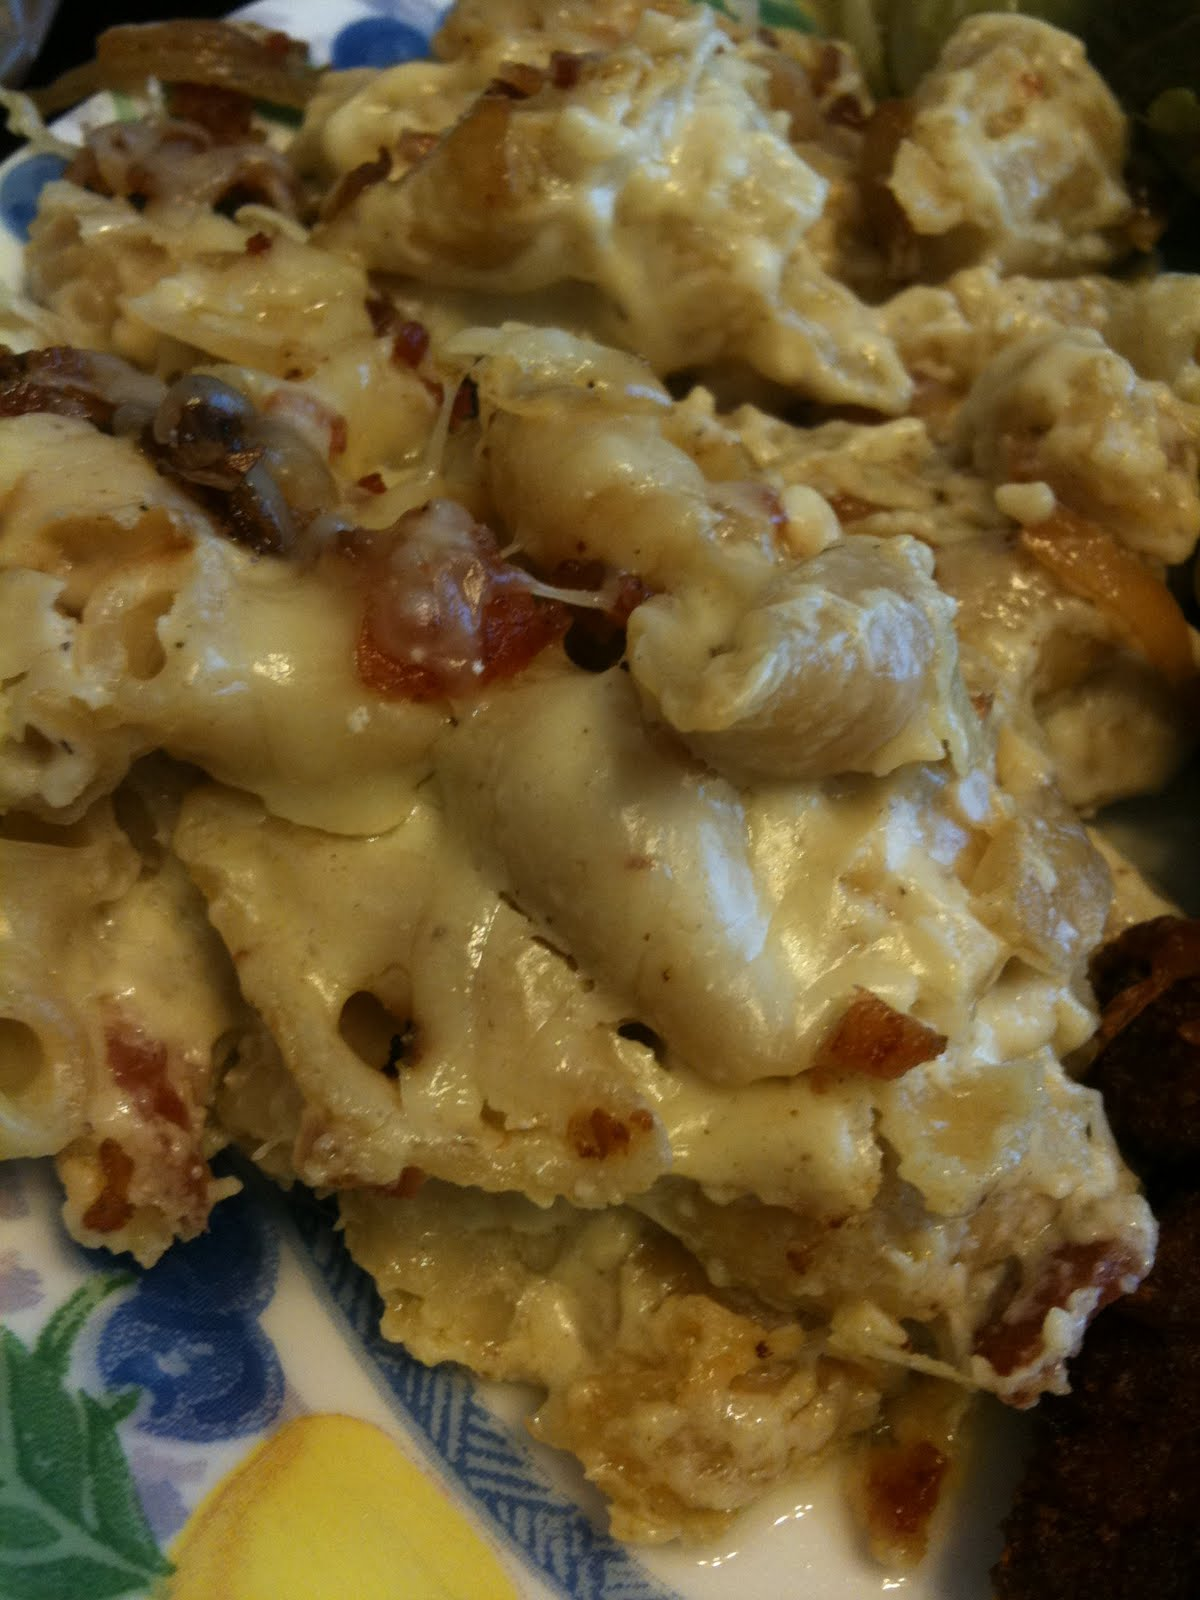 Loving cooking from scratch: 4 Cheese Fancy Baked Mac N Cheese